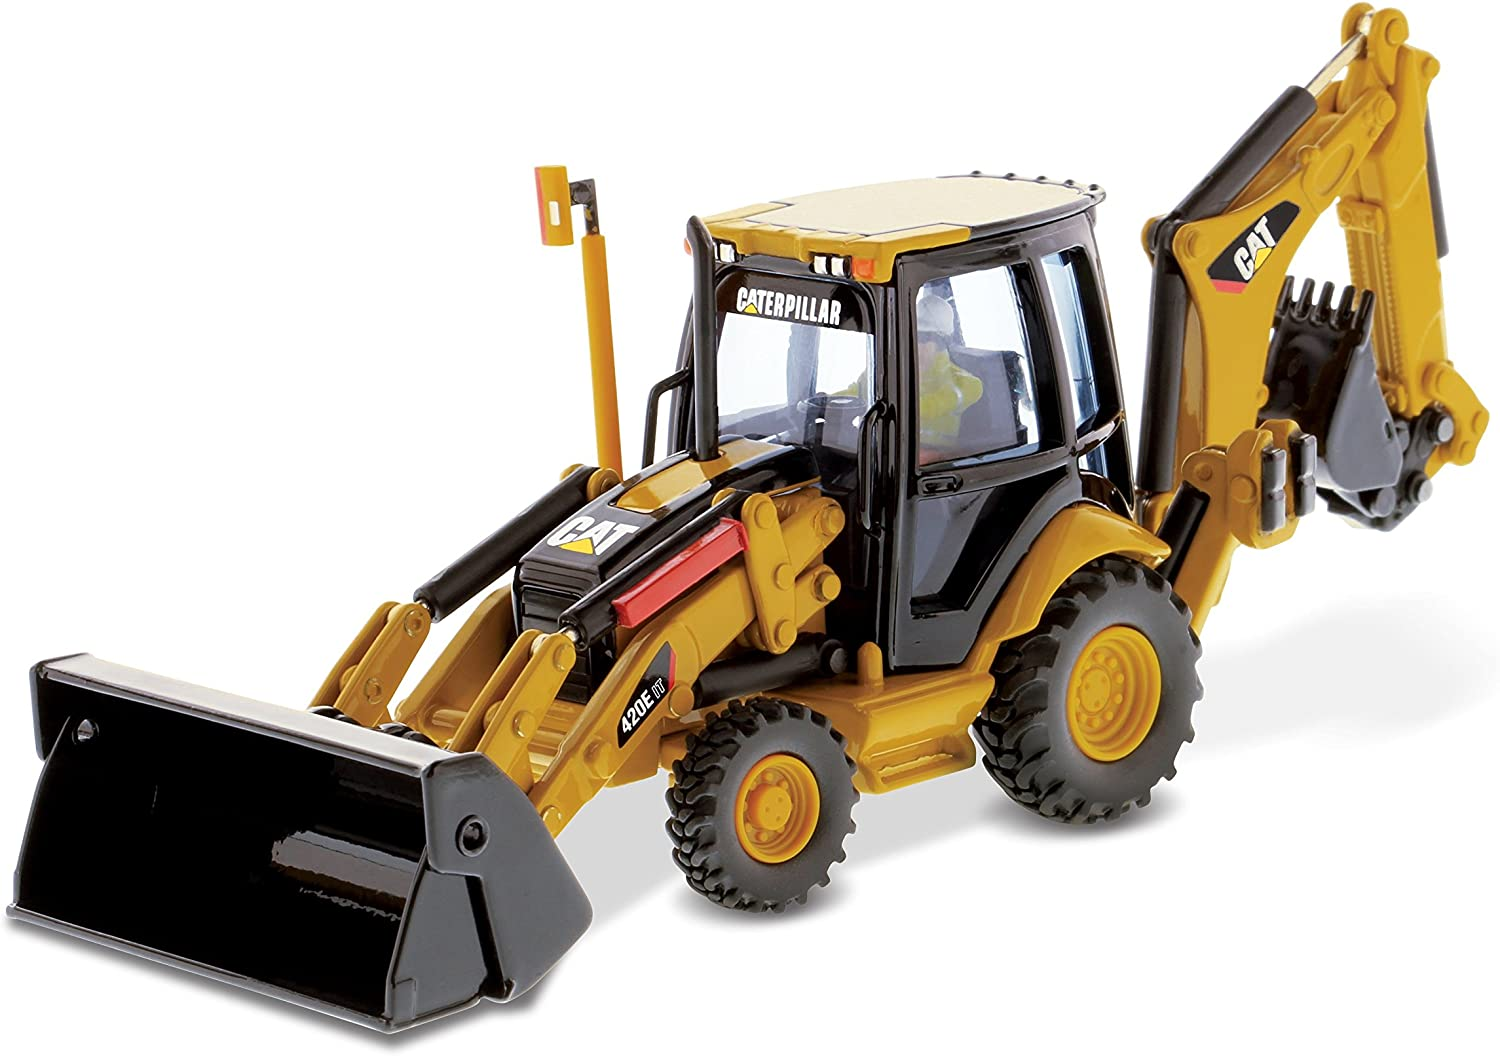 Caterpillar 420E IT Backhoe Loader Core Classics Series Vehicle